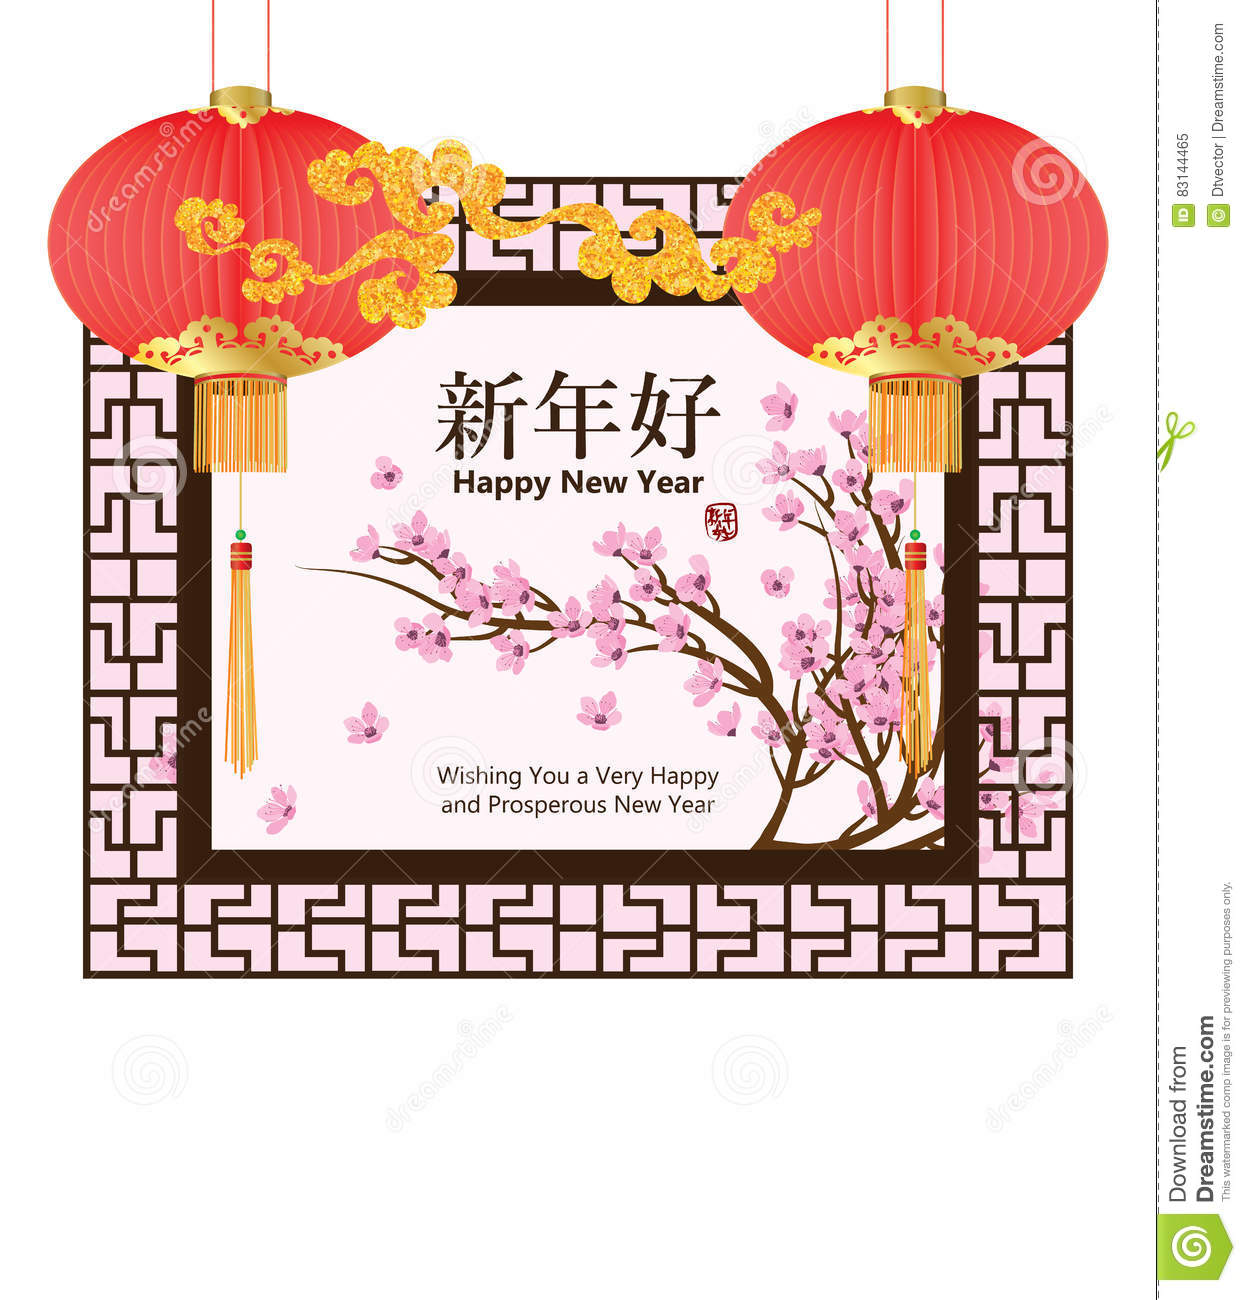 Download Chinese Garden Window Decor New Year Stock Vector   Illustration  Of Asian, Border: